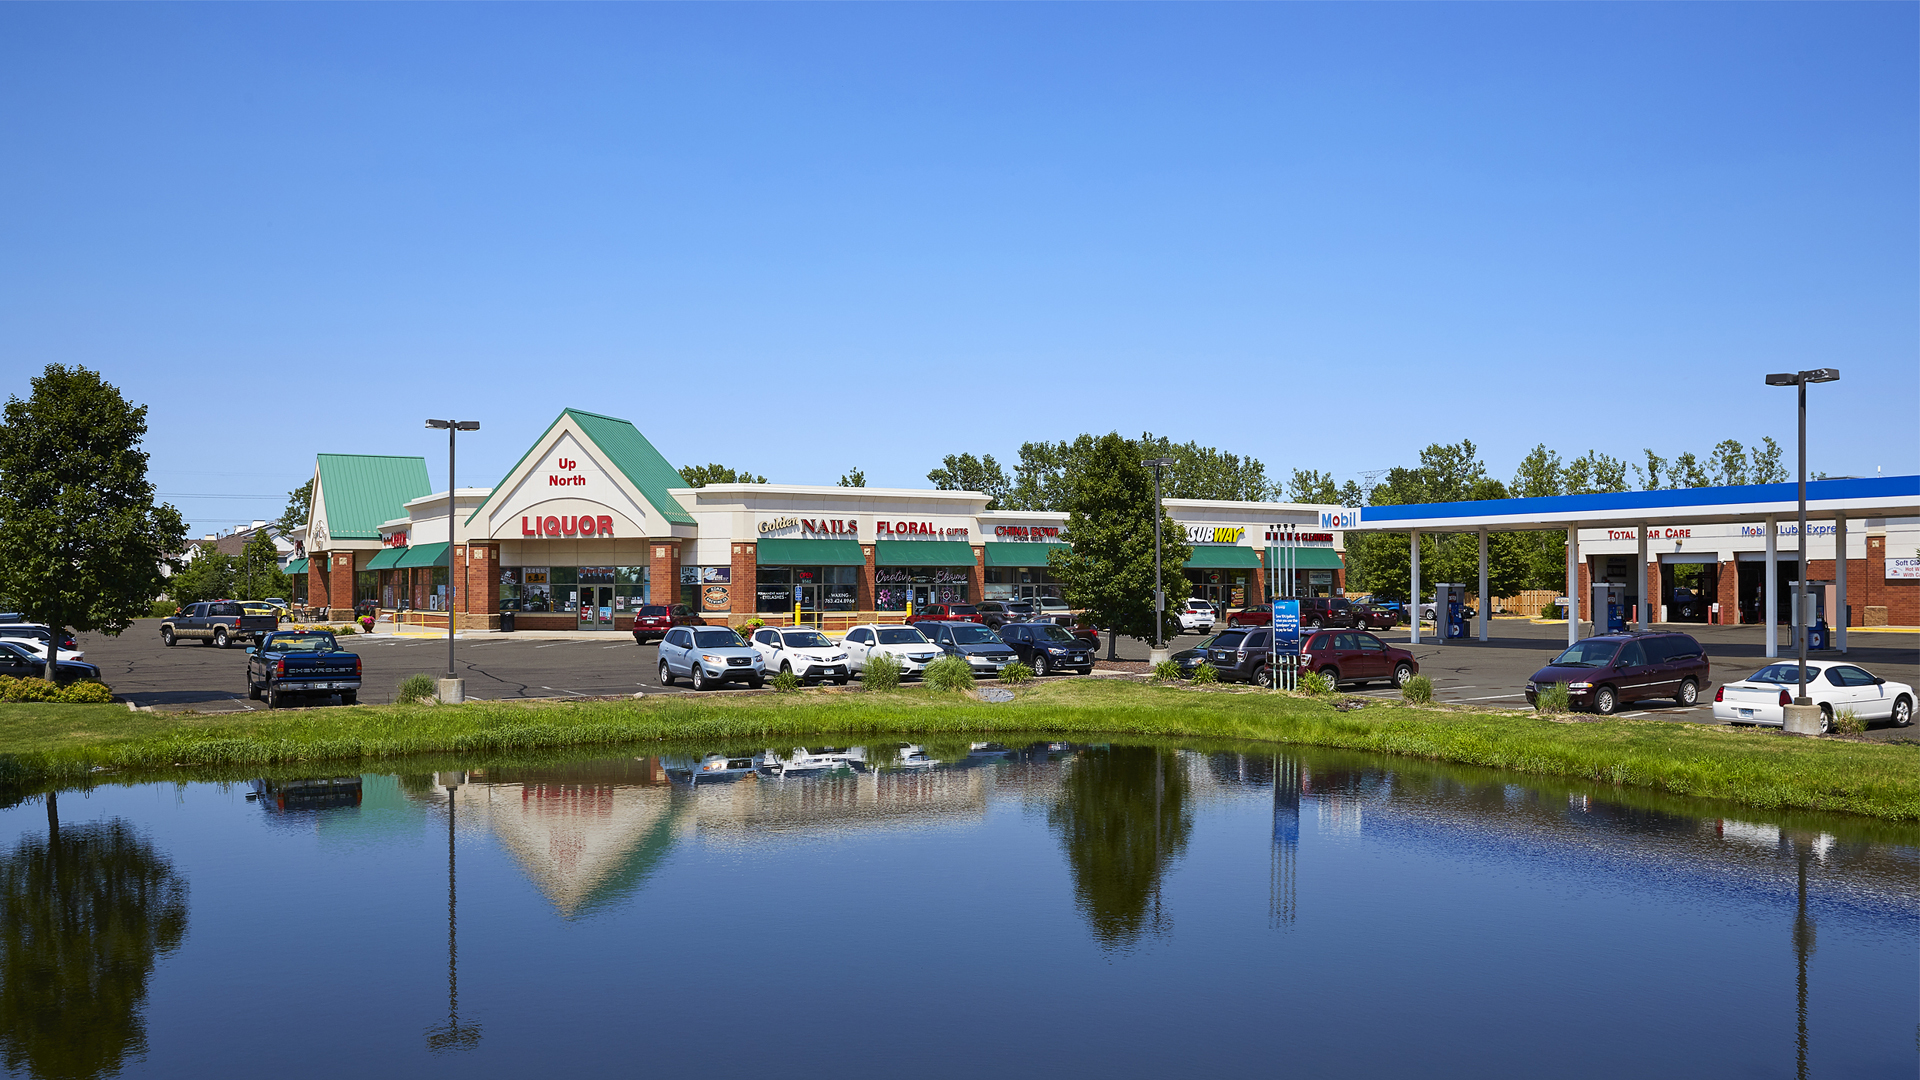 Pinebrook Centre Brooklyn Park MN retail strip mall full view shot from across pond